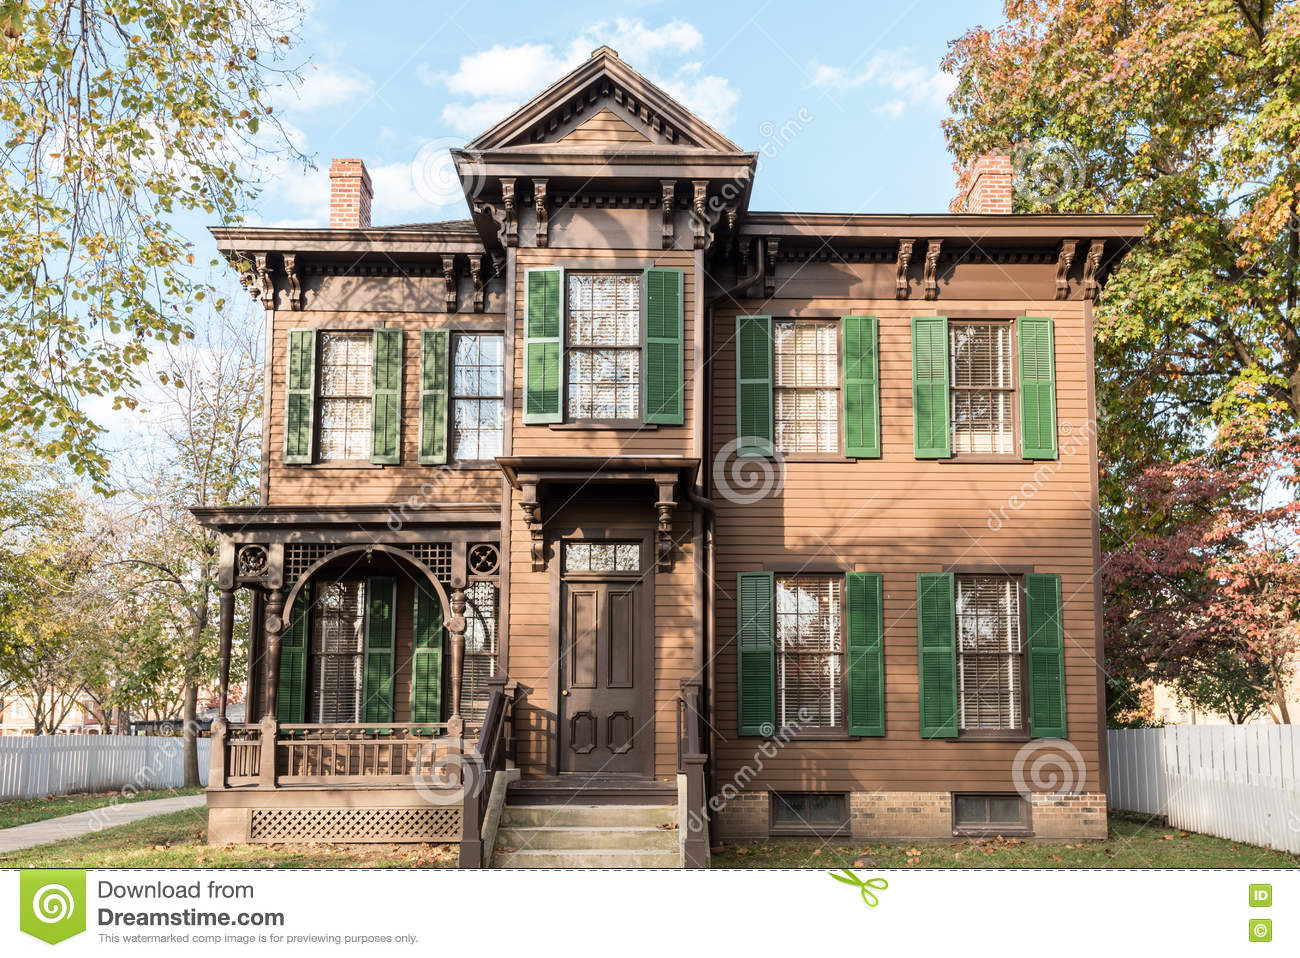 Harriet Dean House Stock Photo Image 80953684